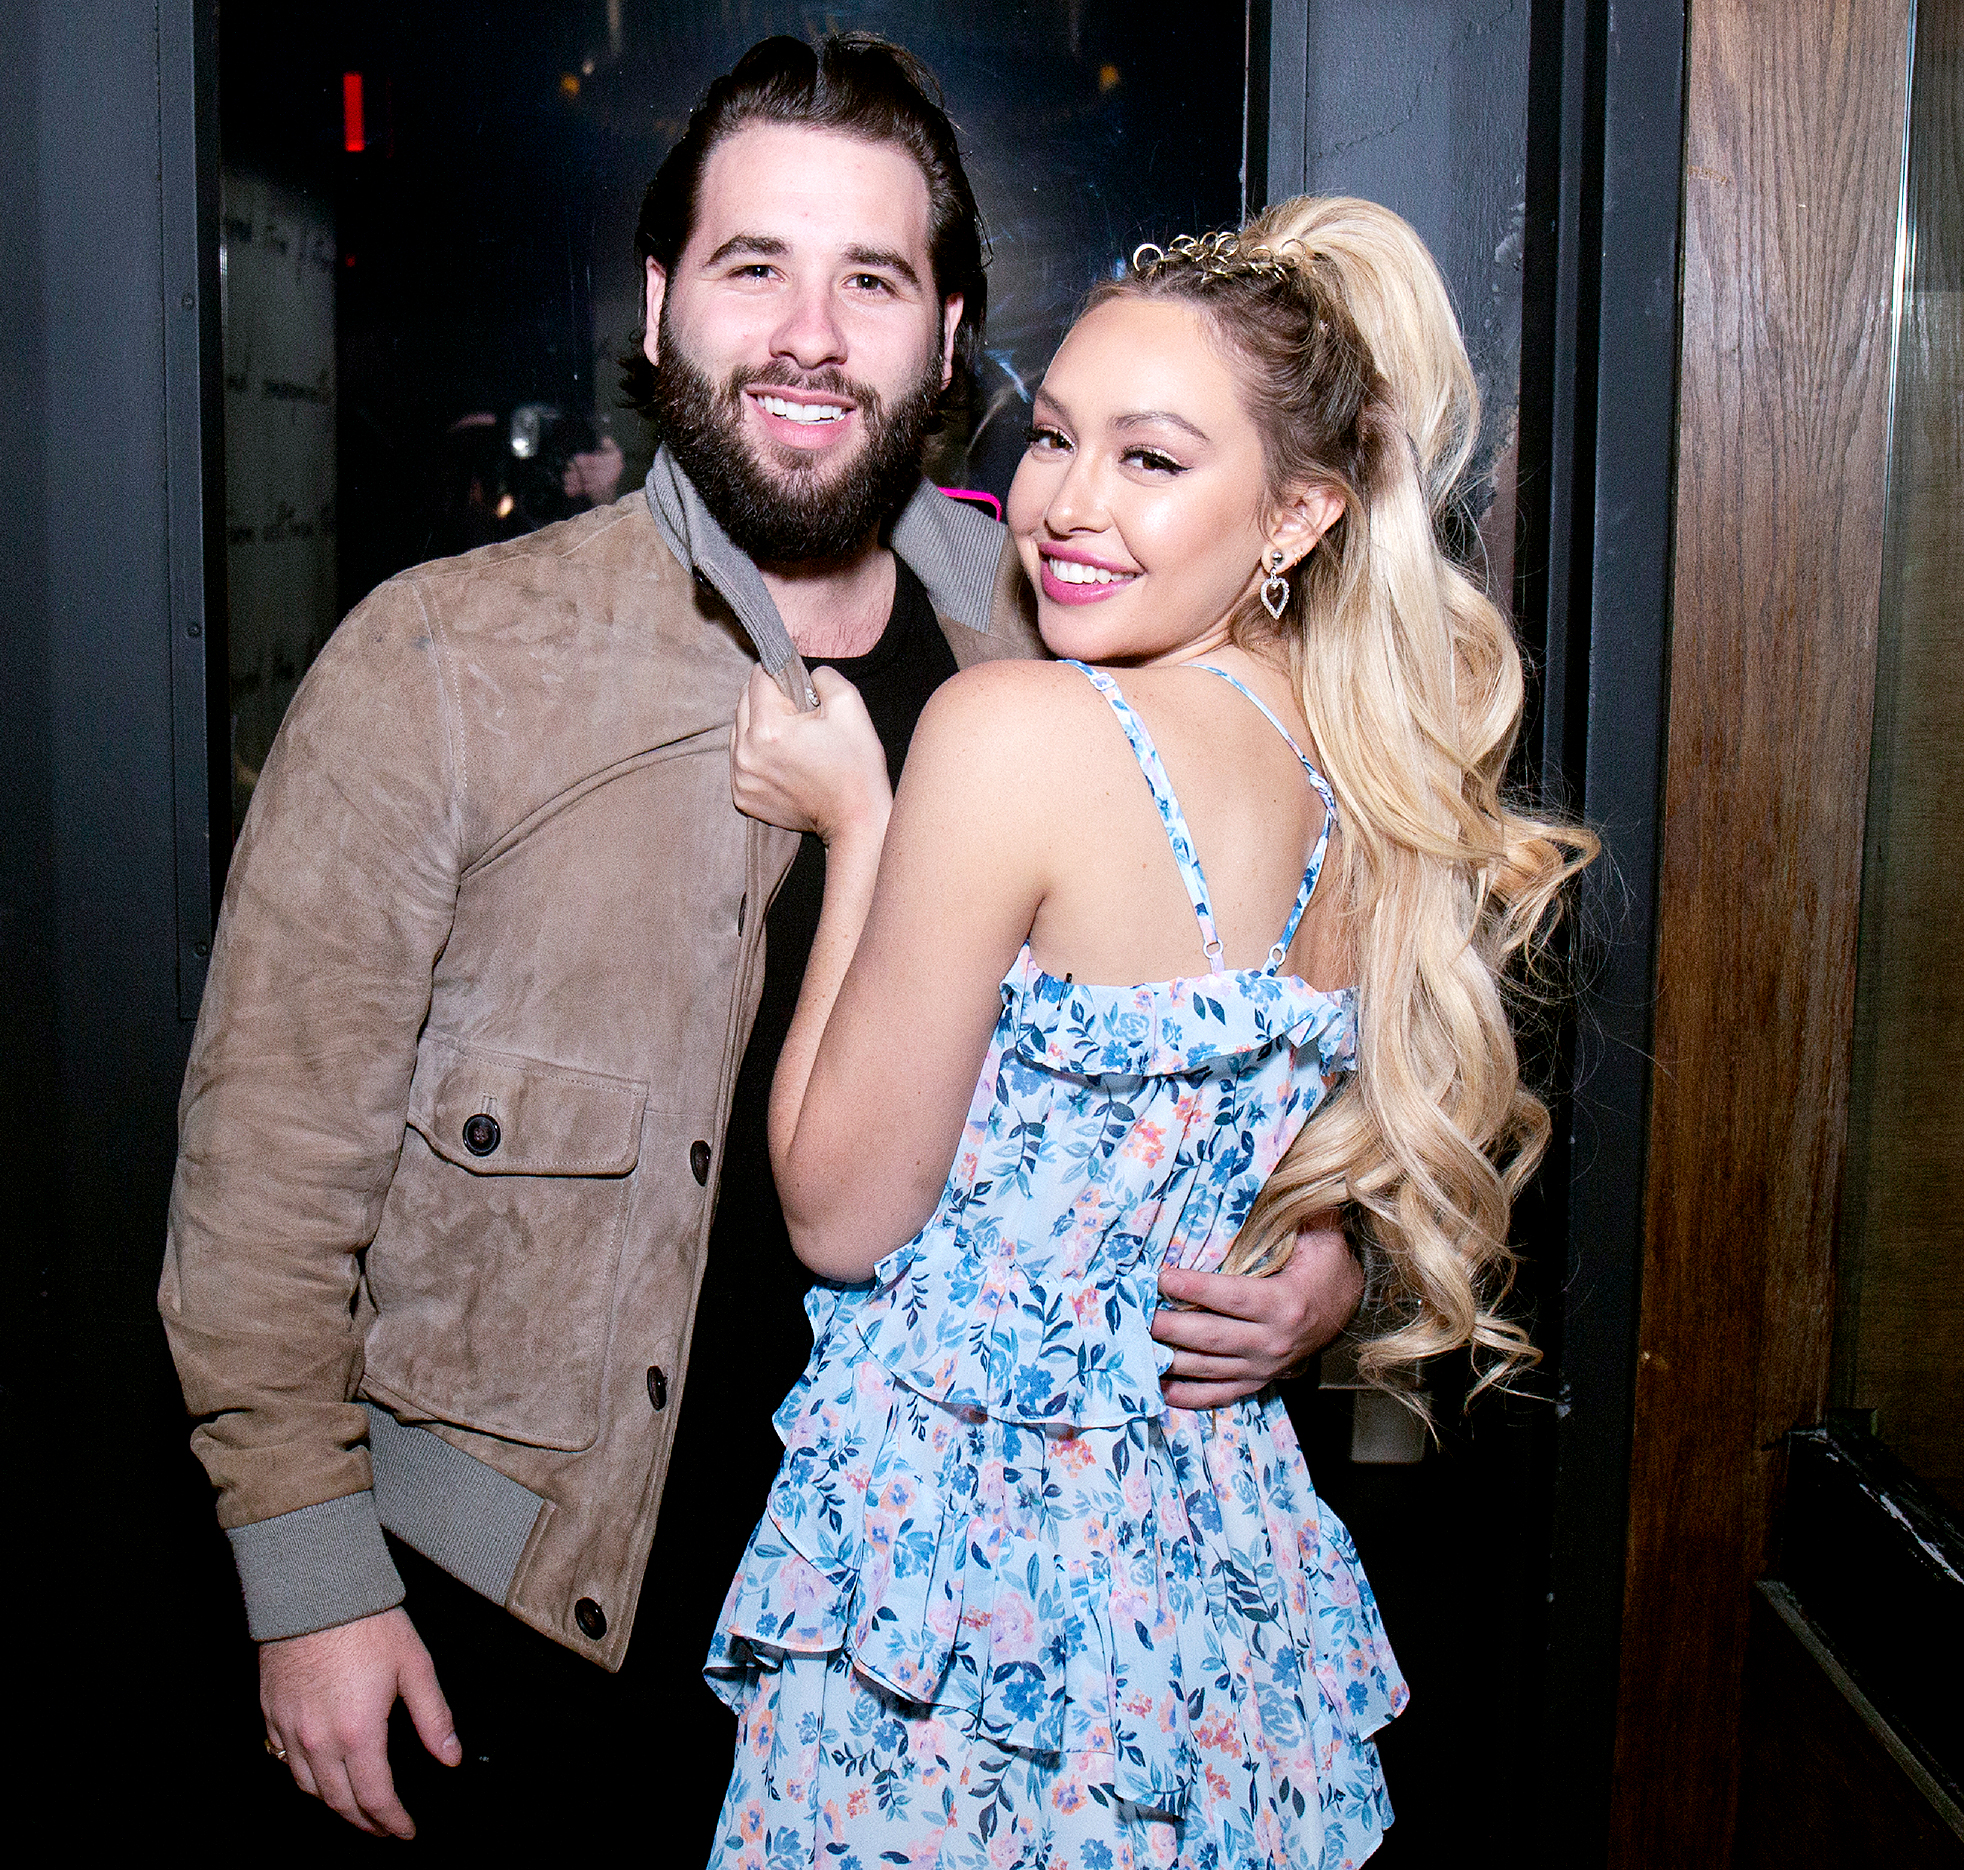 Corinne-Olympios-Gonna-Get-Engaged-Jon-Yunger - NEW YORK, NY – NOVEMBER 10: Jon Yunger and Corinne Olympios at 1OAK for her birthday celebration on November 10, 2018 in New York City. (Photo by Santiago Felipe/Getty Images)